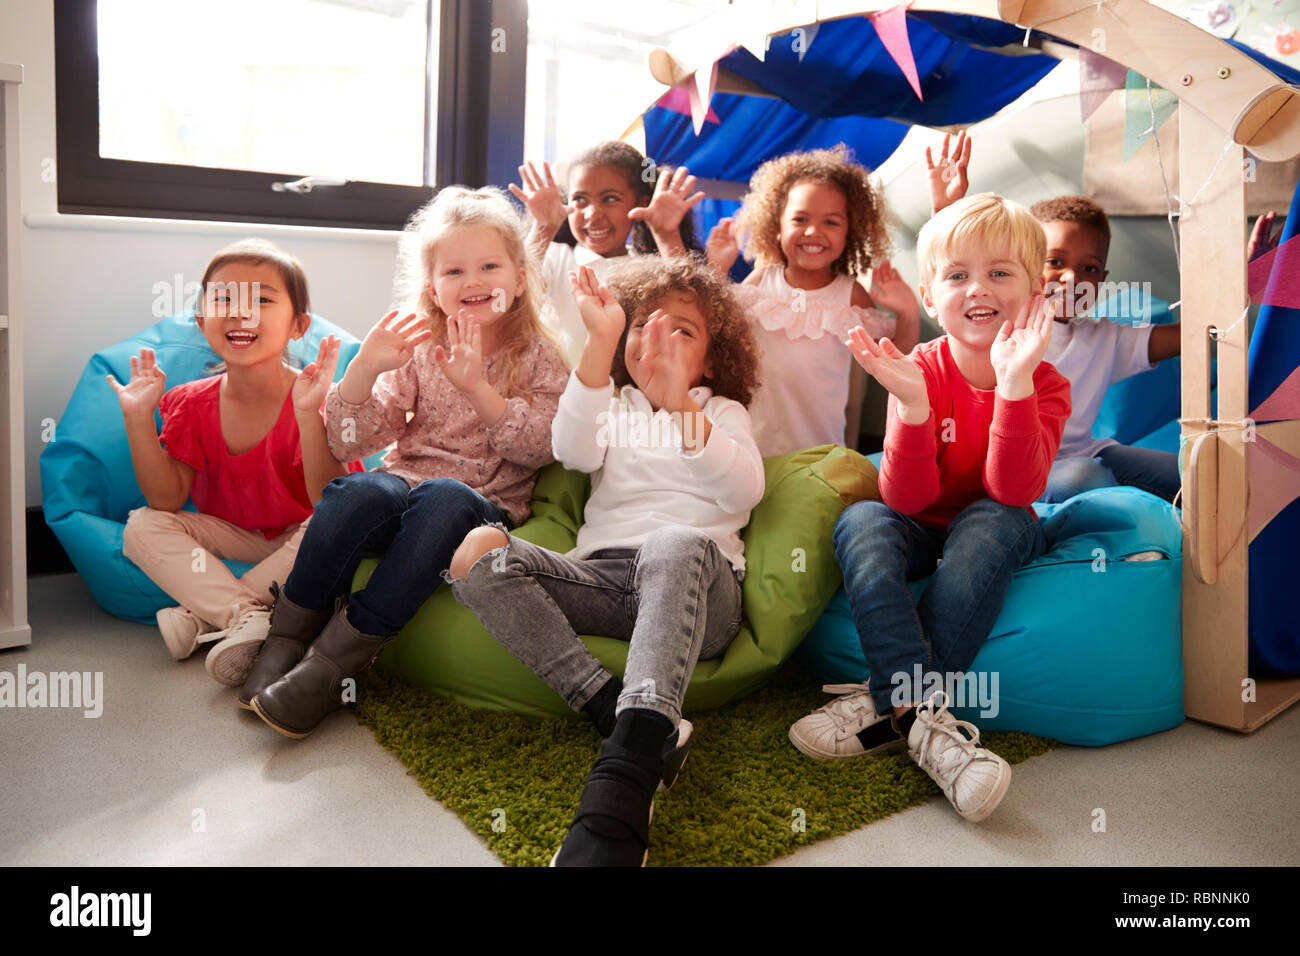 A multi-ethnic group of infant school children sitting on bean bags in a comfortable corner of the classroom, smiling and waving to camera, low angle, close up - Stock Image